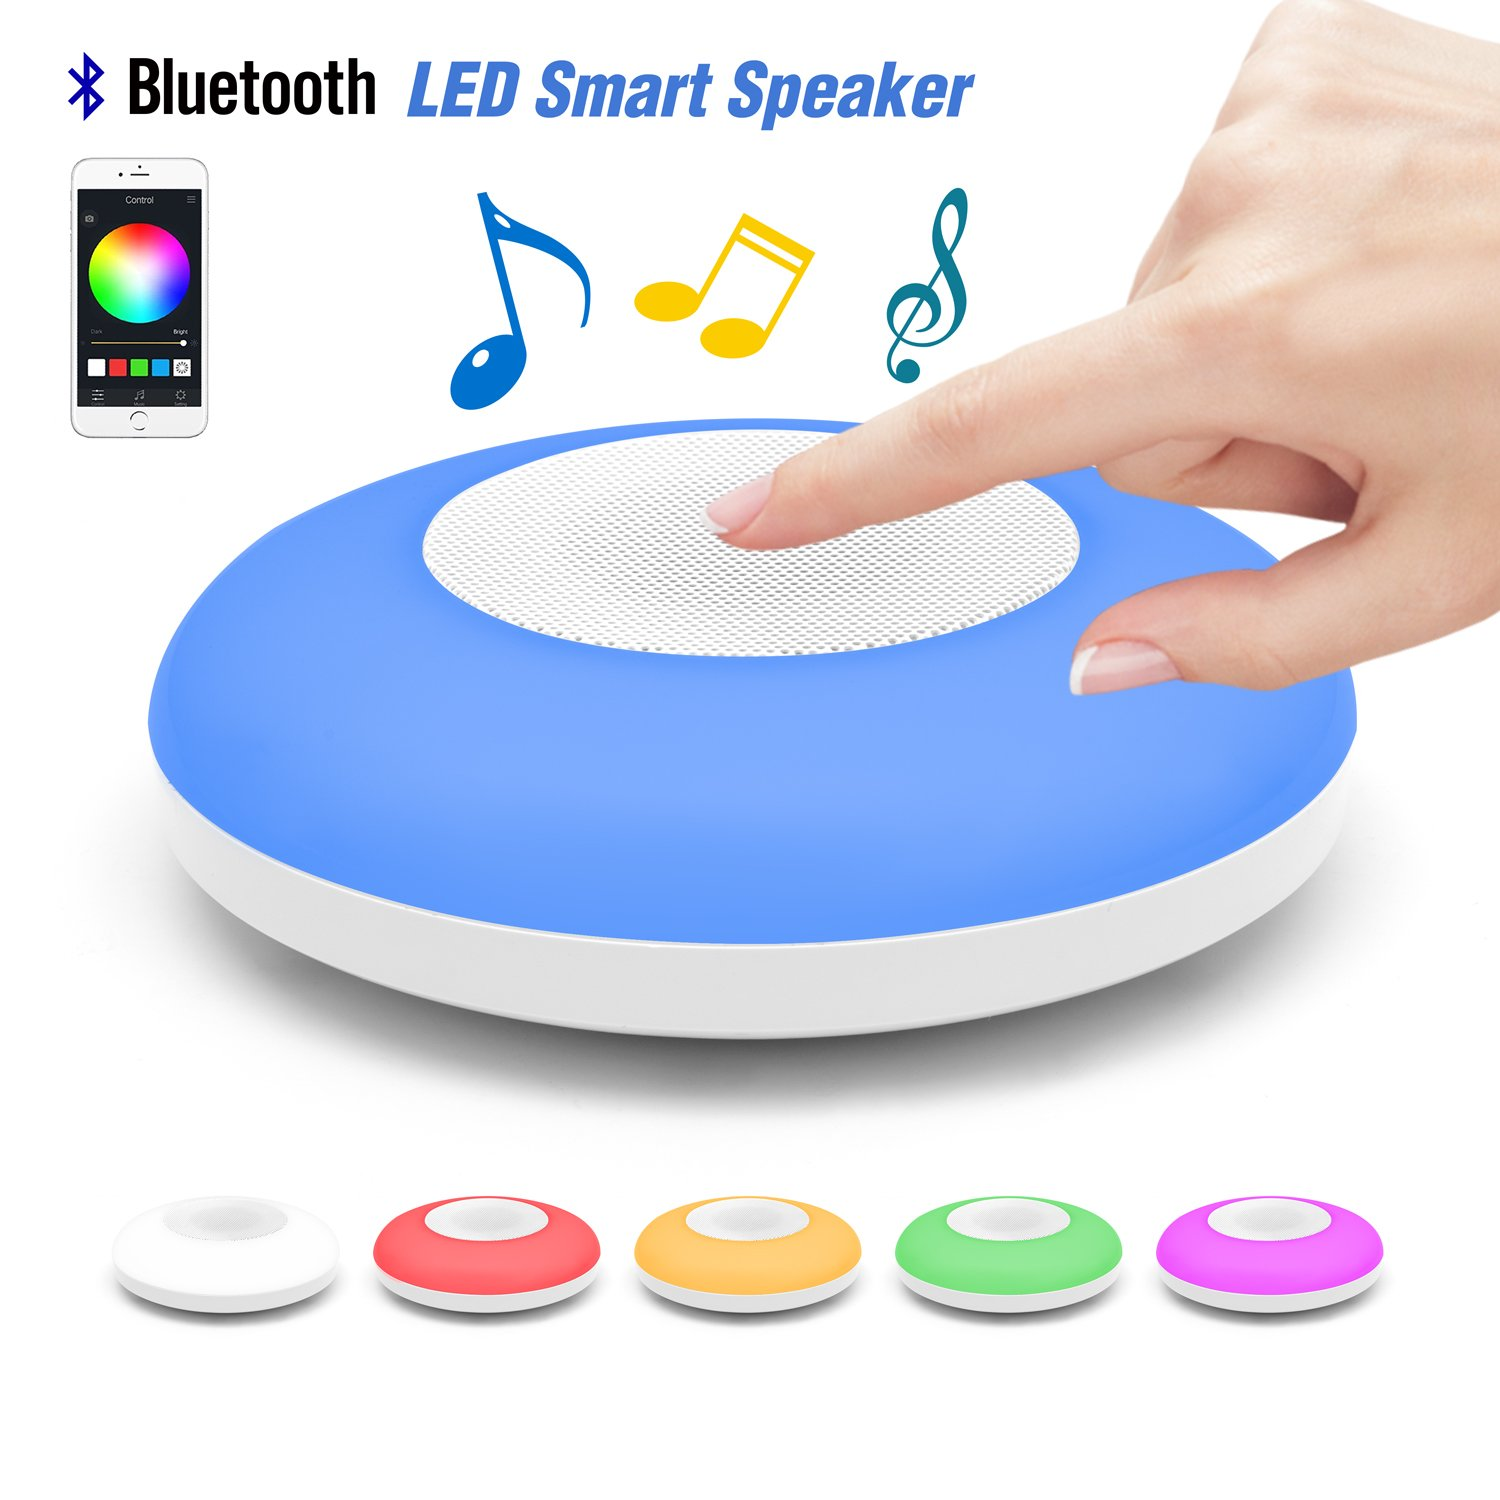 Valentines Gift Led Night Light Pocket Bluetooth Speaker UFO,Table LED Bedside Lamp,Hi-Fi Remote Controlled by iOS/Android Cell Phone,Perfect for Party,Home Enjoyment,Guest Entertaining,Outdoor Travel